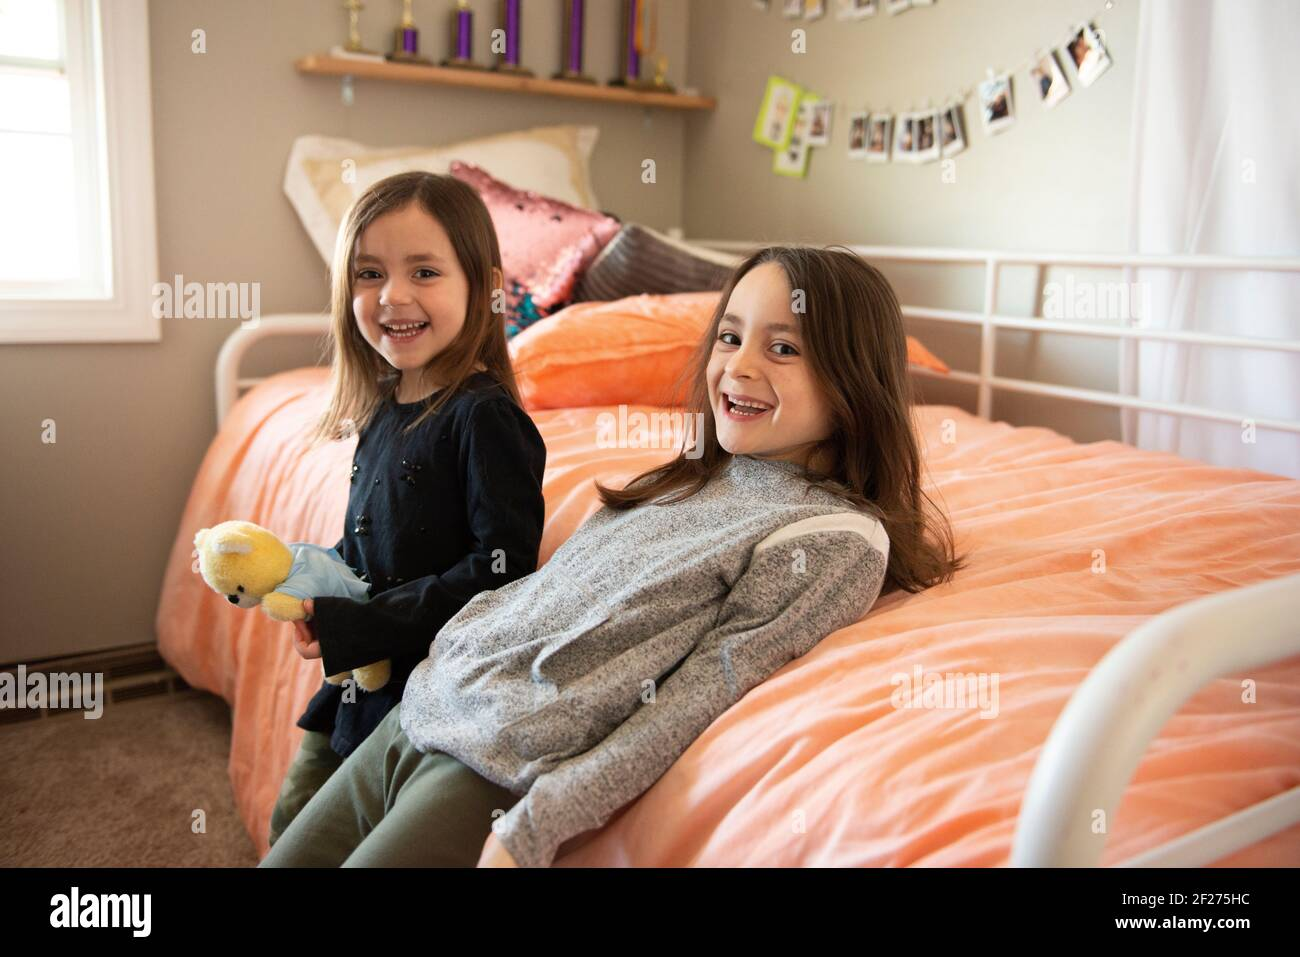 Two Beds Girls Bedroom High Resolution Stock Photography And Images Alamy